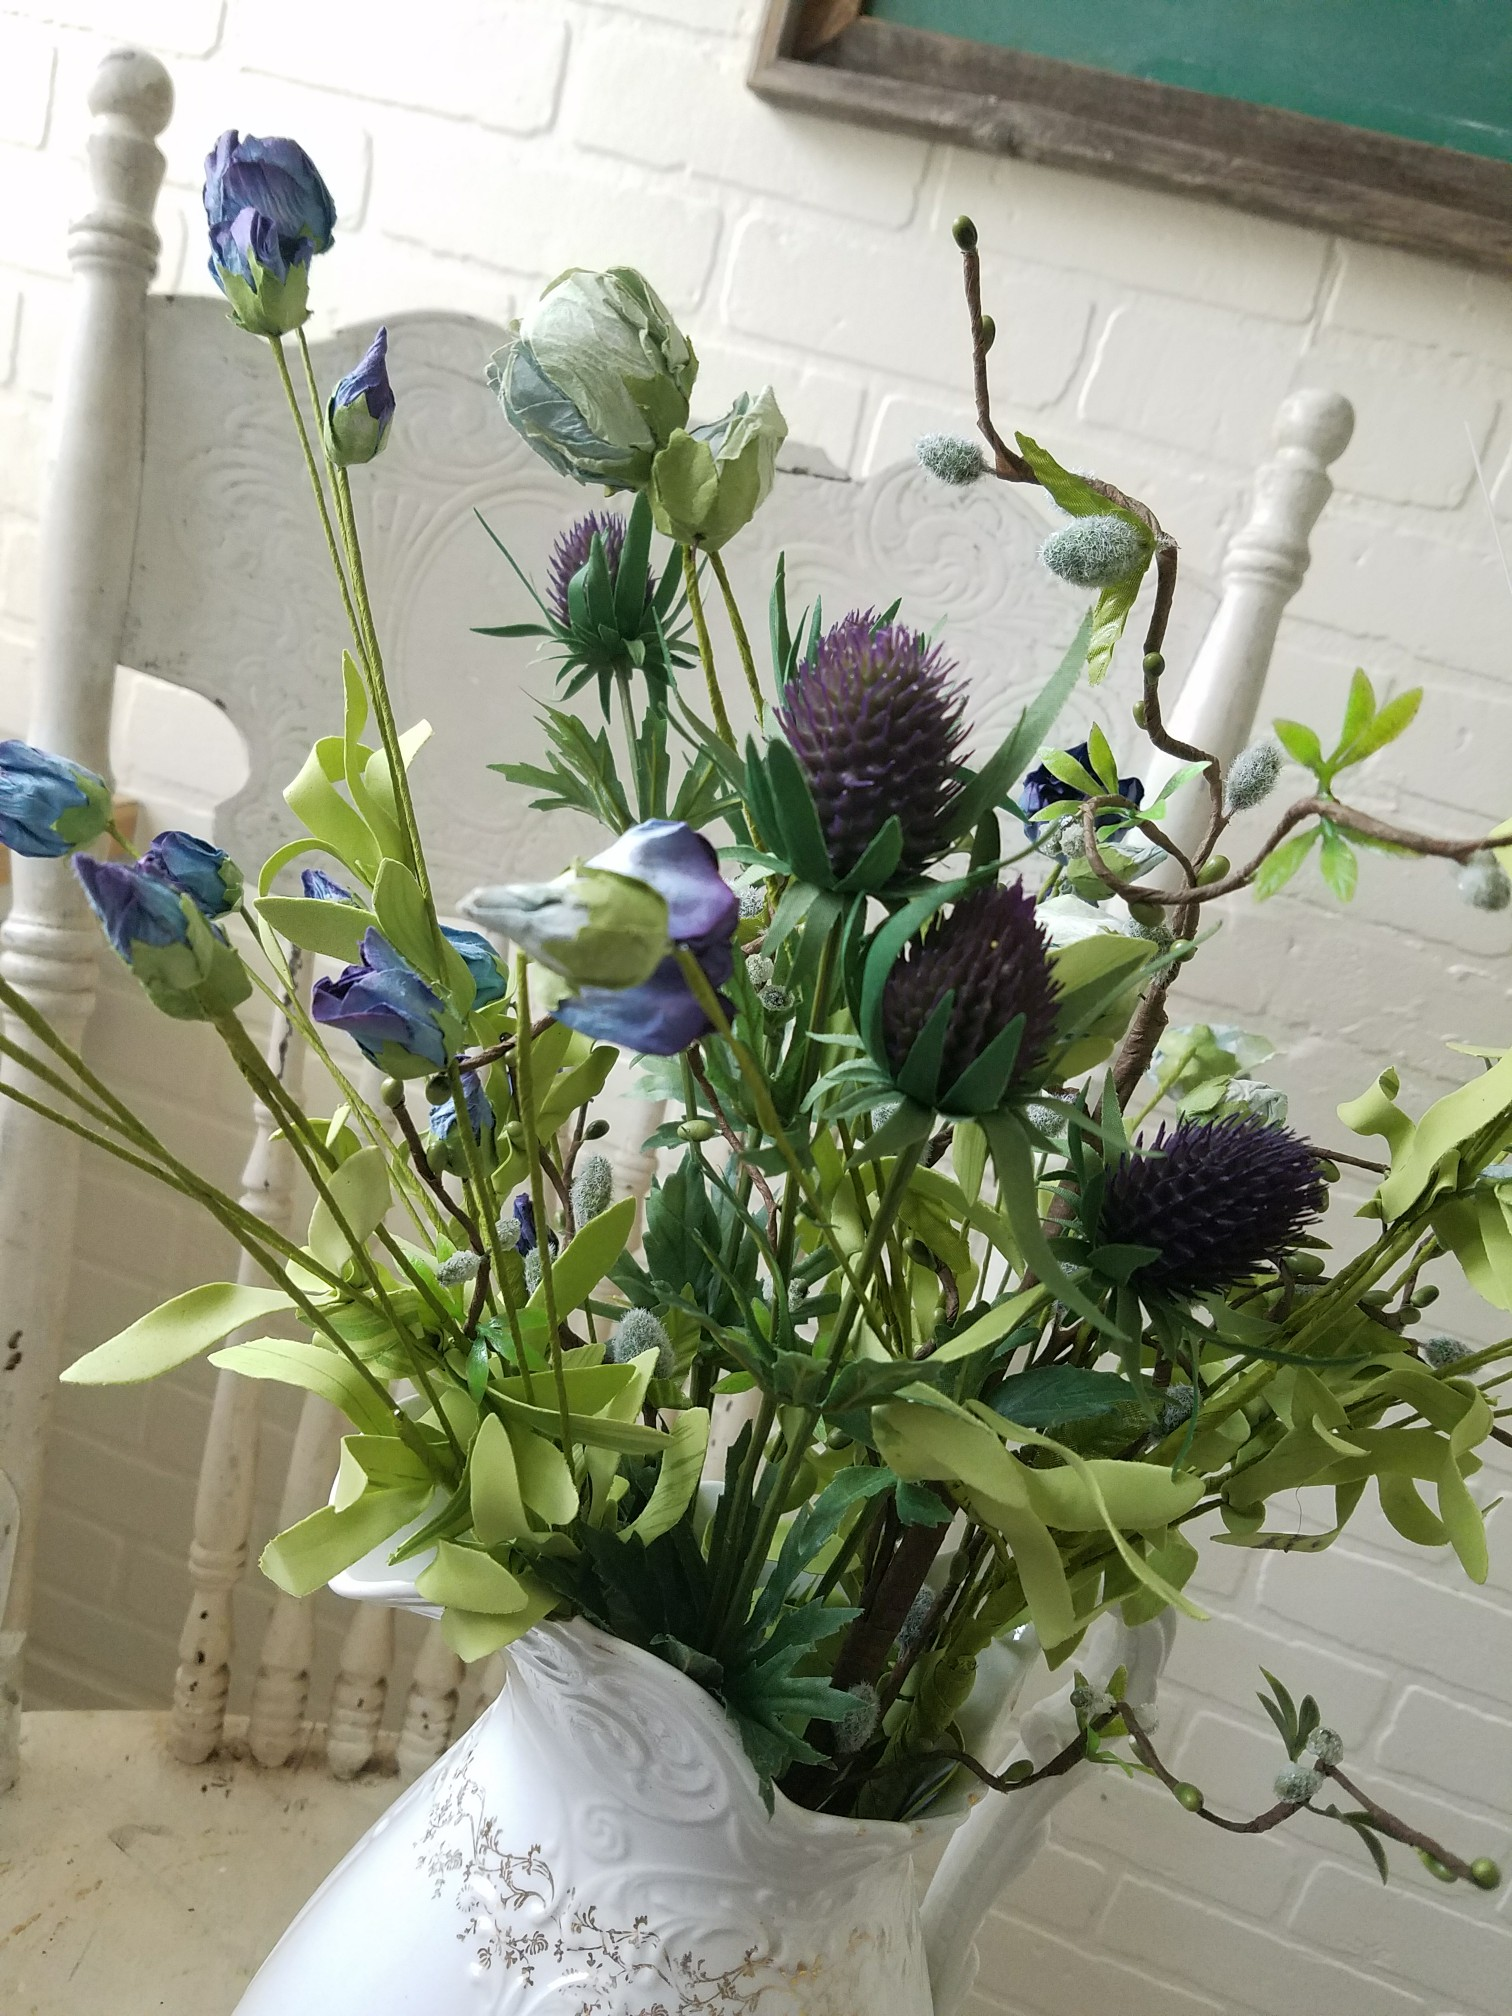 Amazing colors in this spring bouquet thistle, blue roses, pussy willow in ironstone